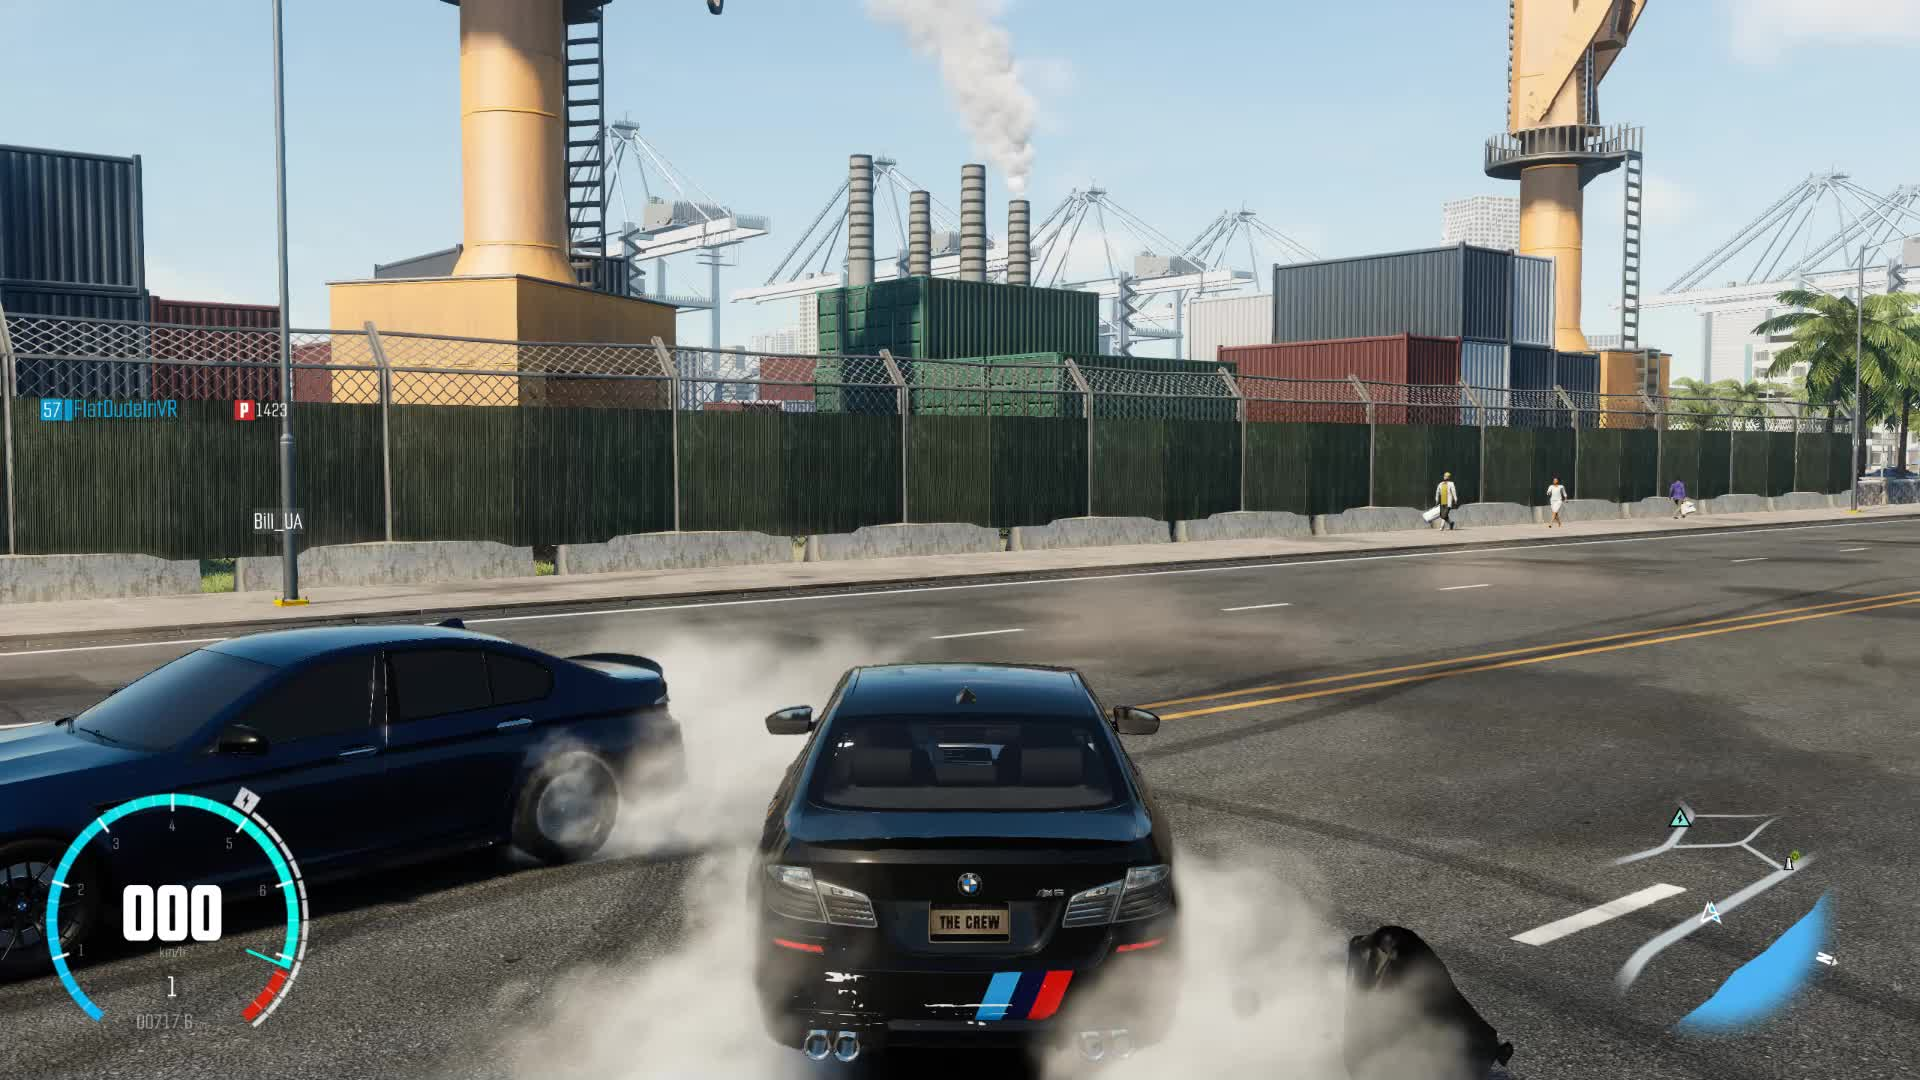 gamephysics, [The Crew] Free parking GIFs